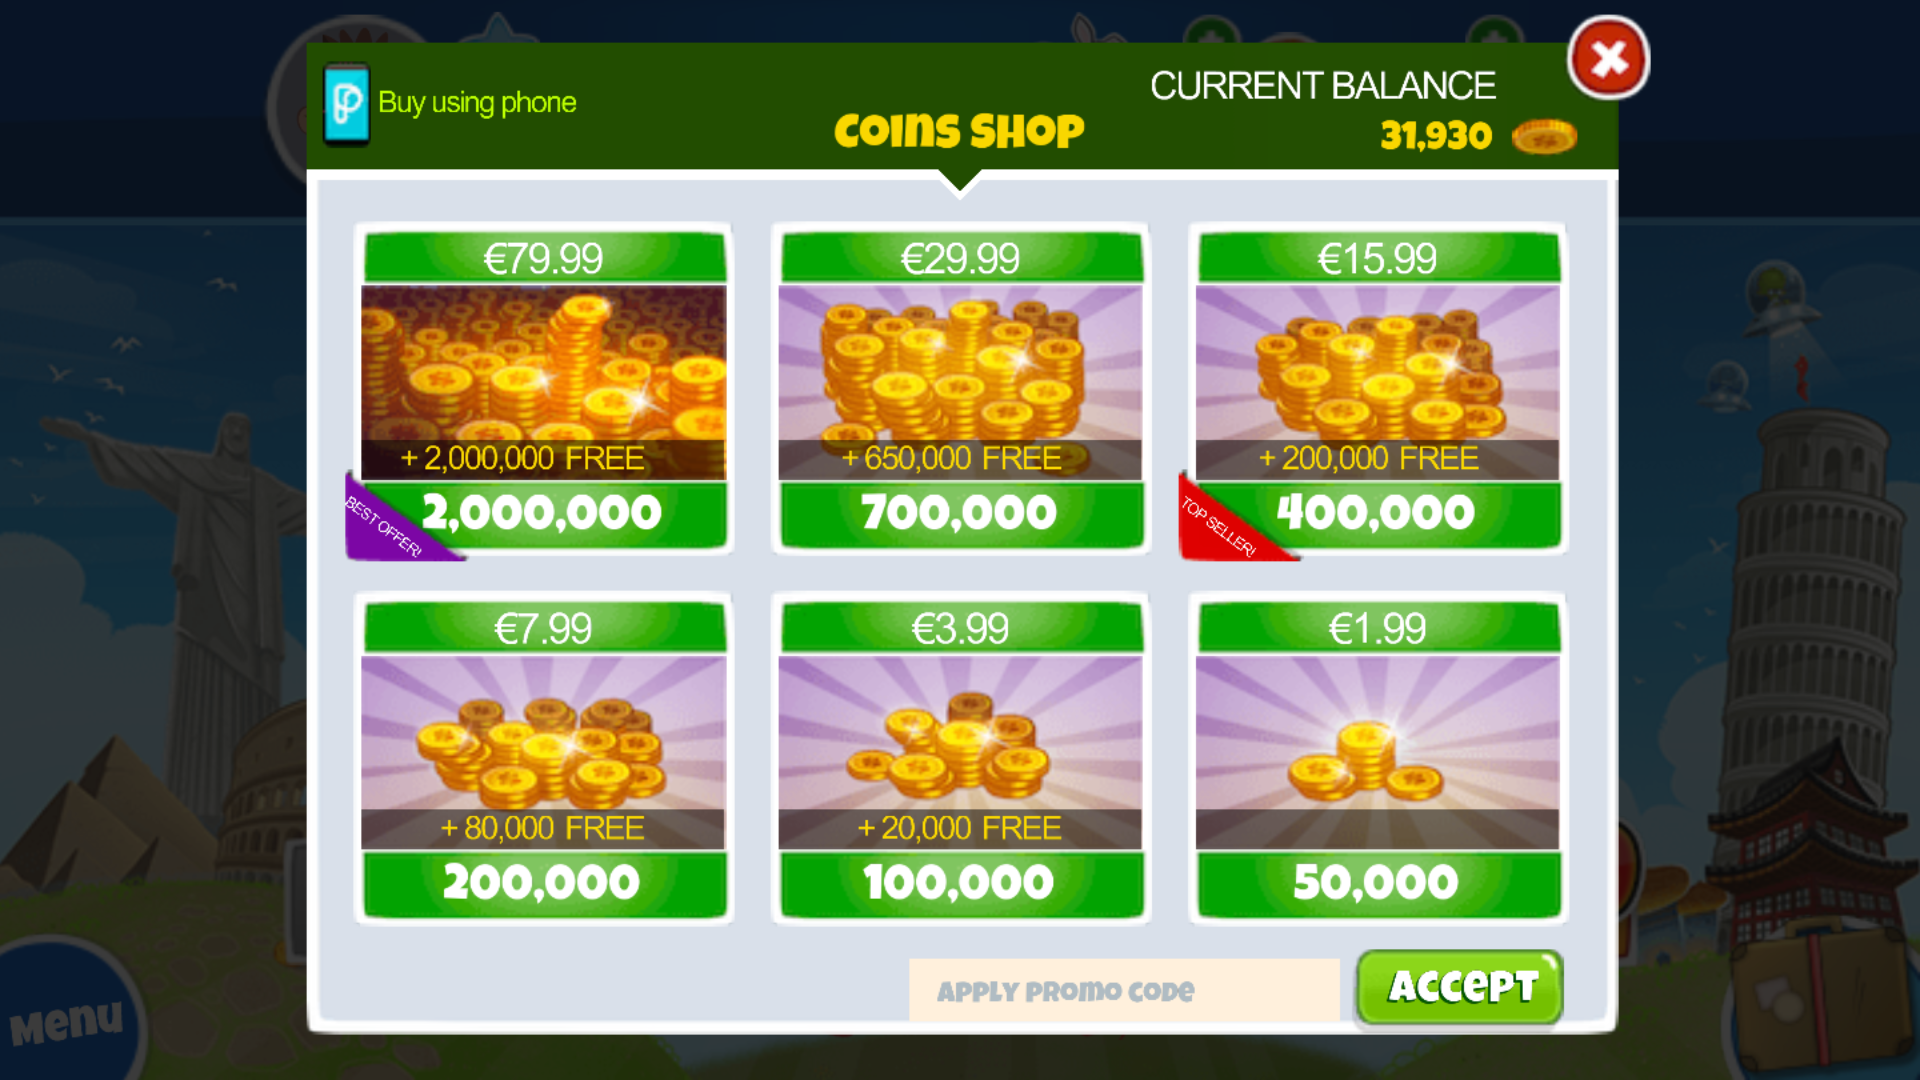 Coins_shop.png